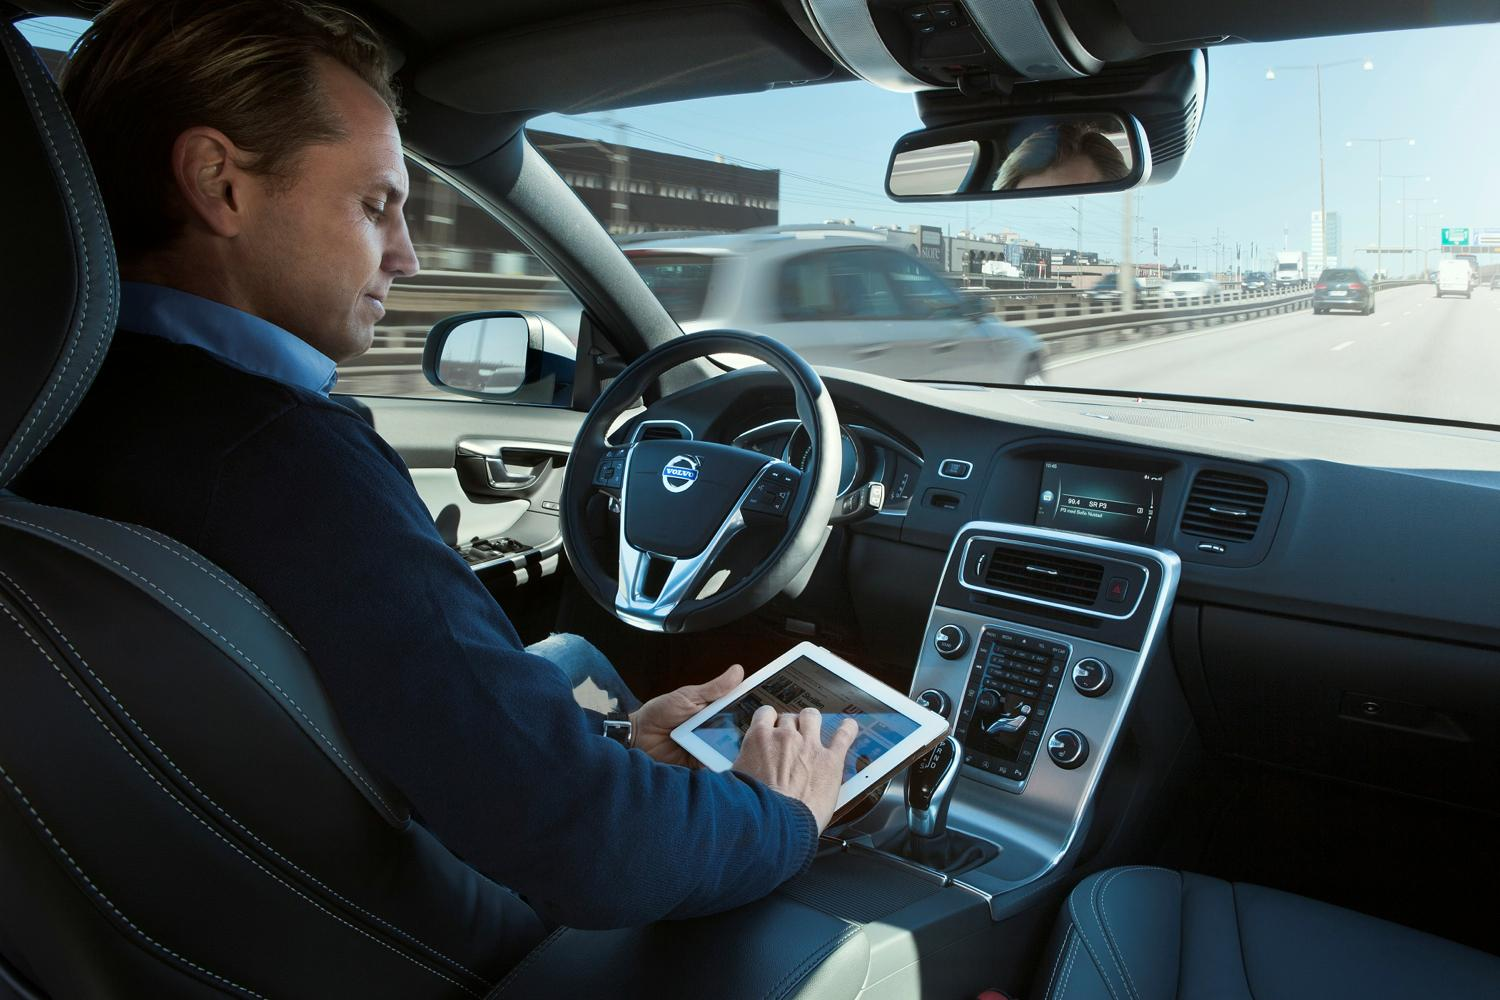 Self-driving cars may allow for custom autonomous car insurance.